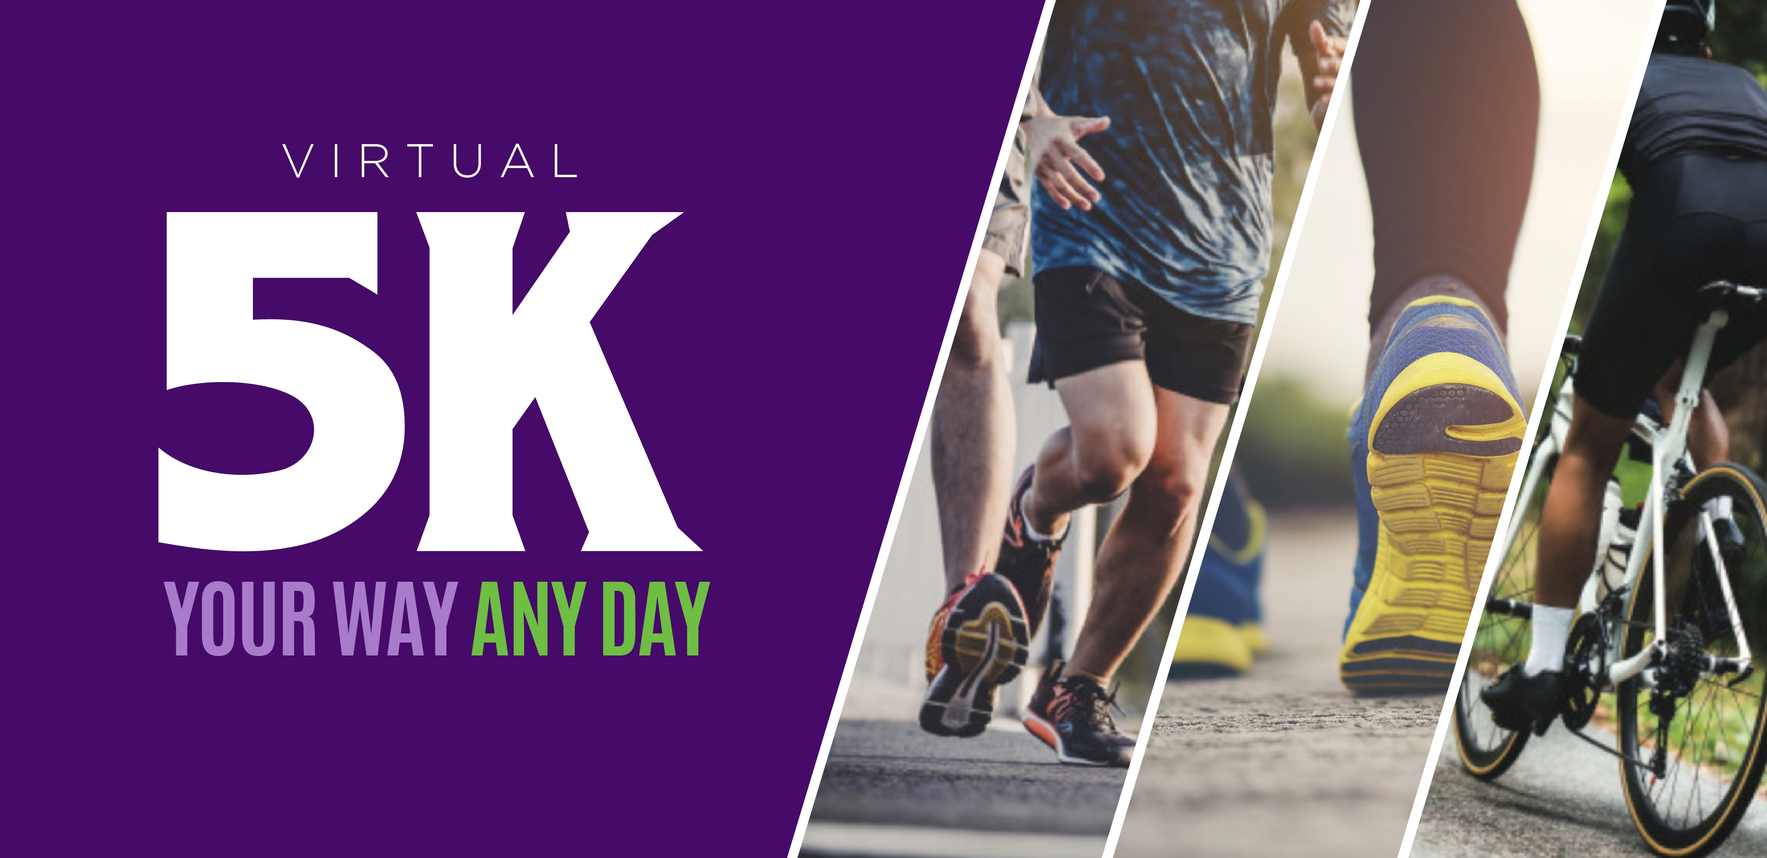 Herren Project Virtual 5K Your Way Any Day image